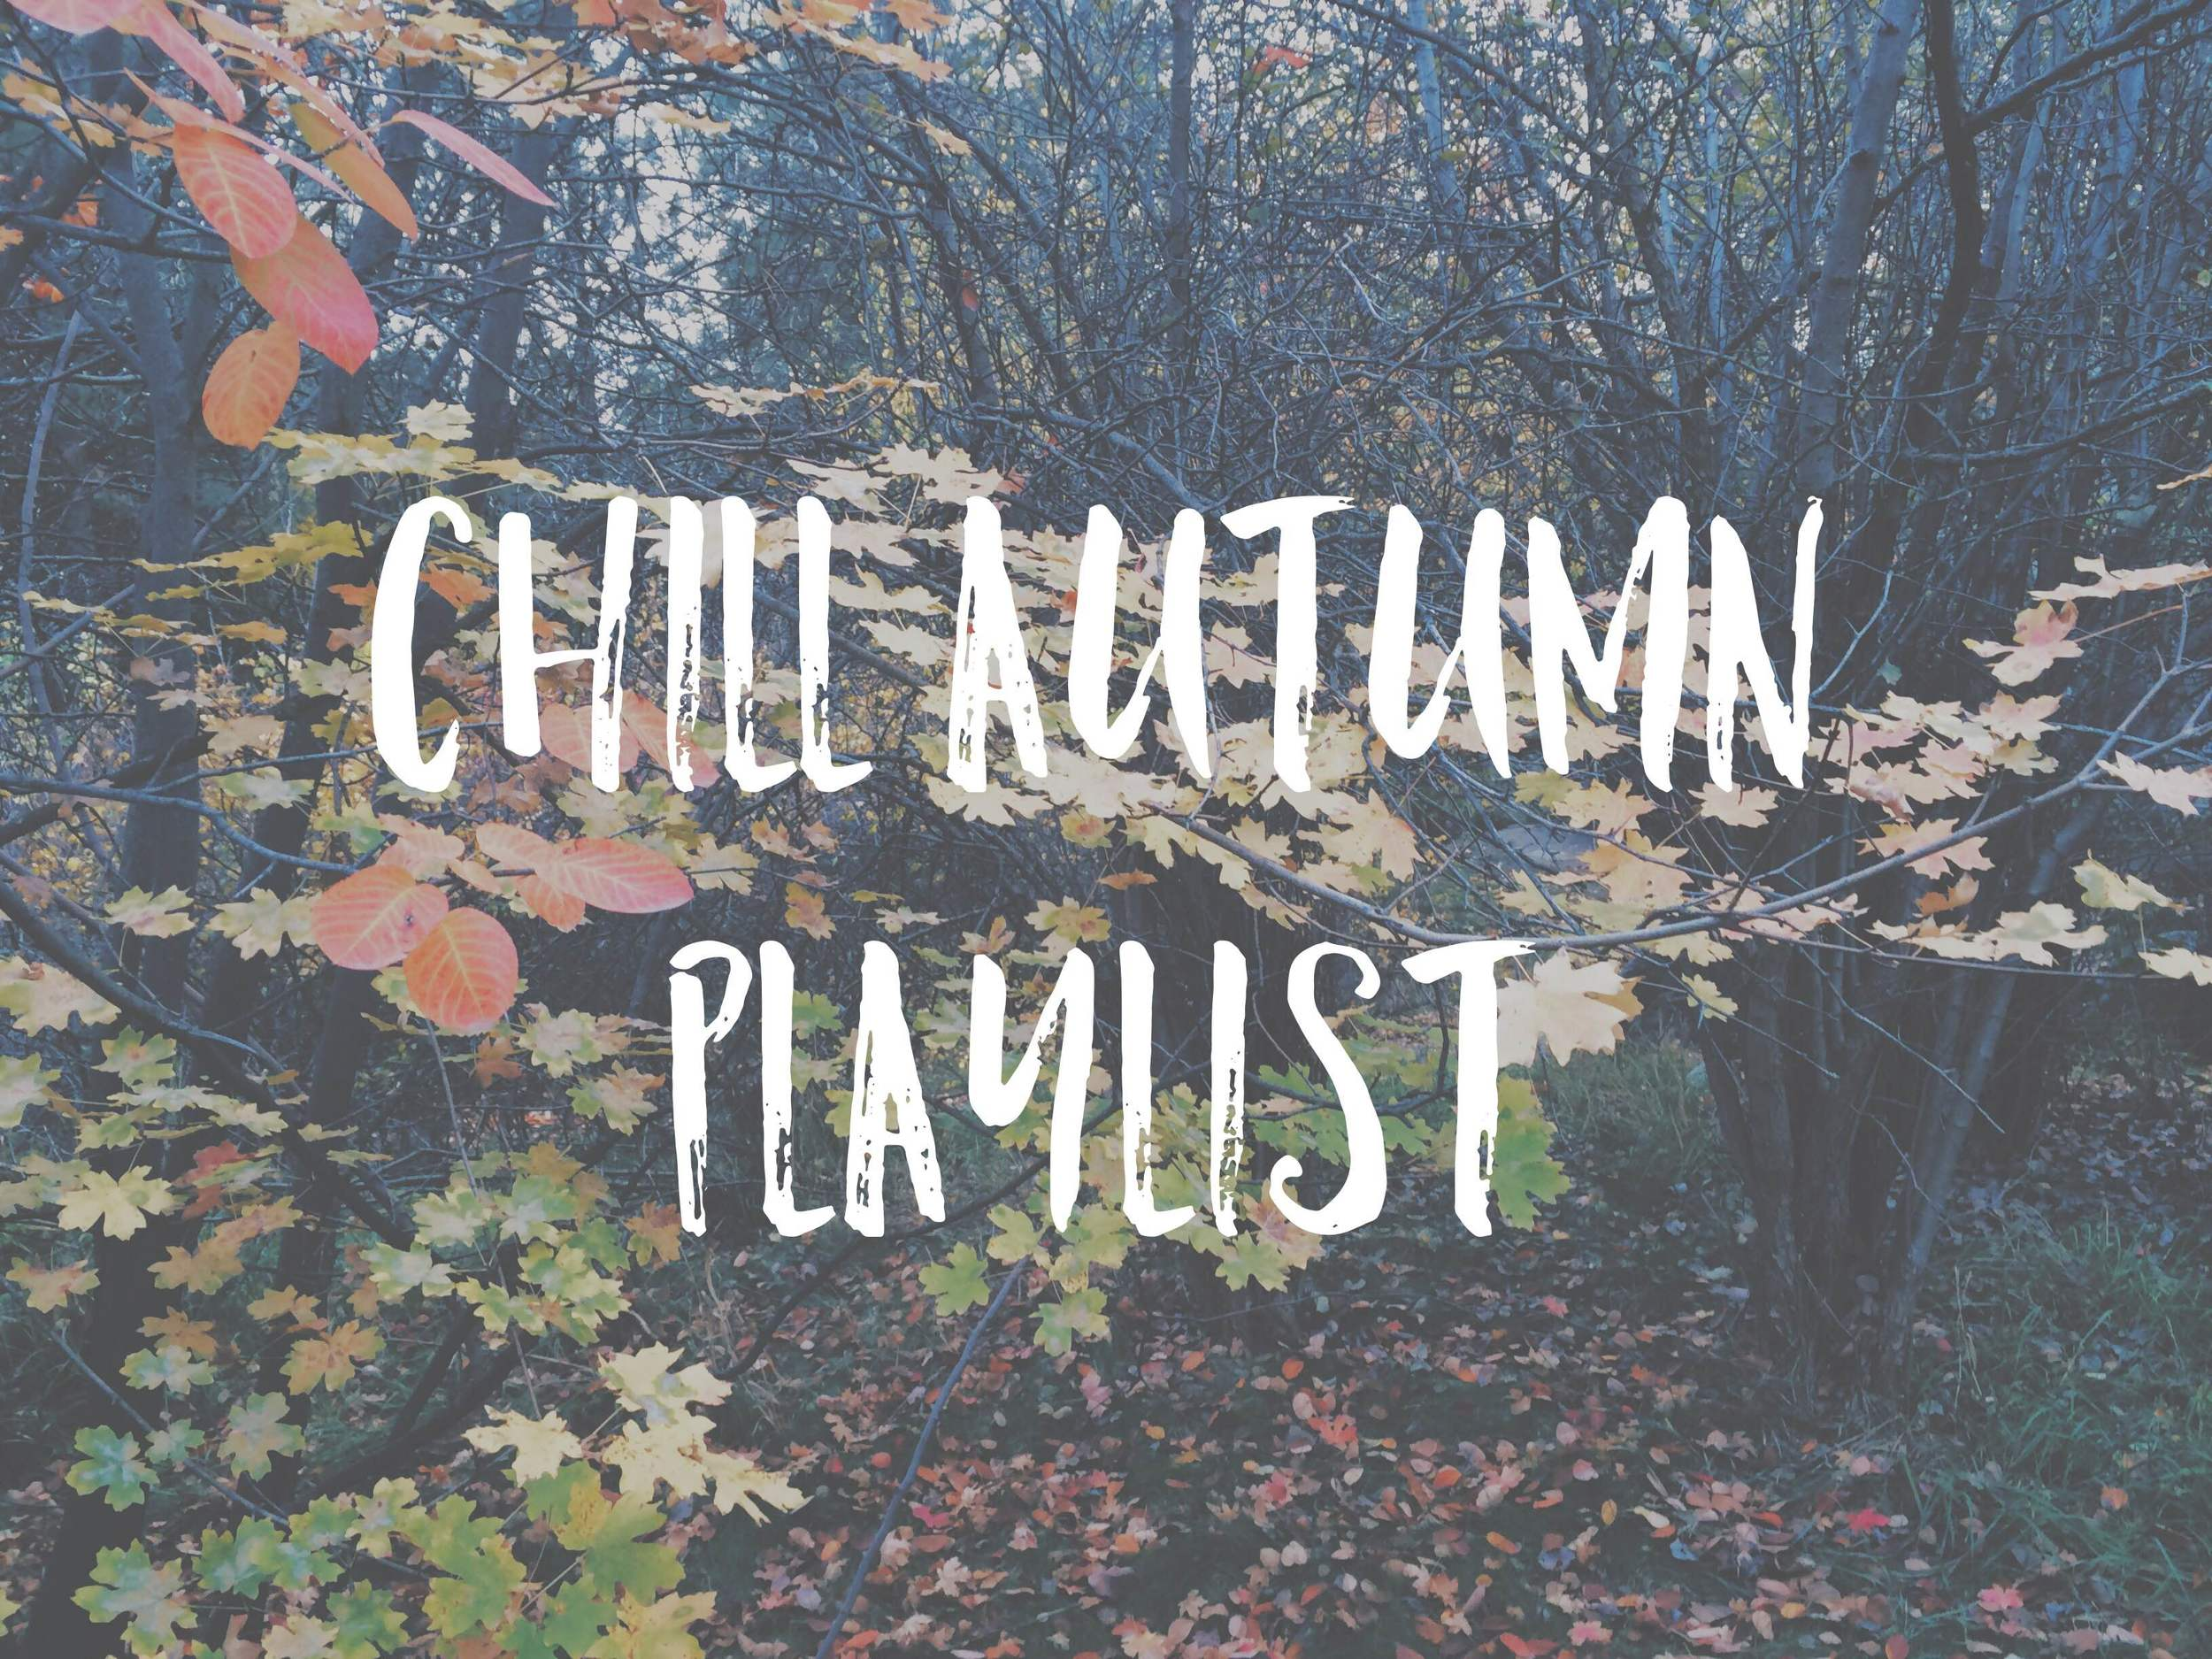 A chill autumn playlist: some roots, some jazz, some indie rock.